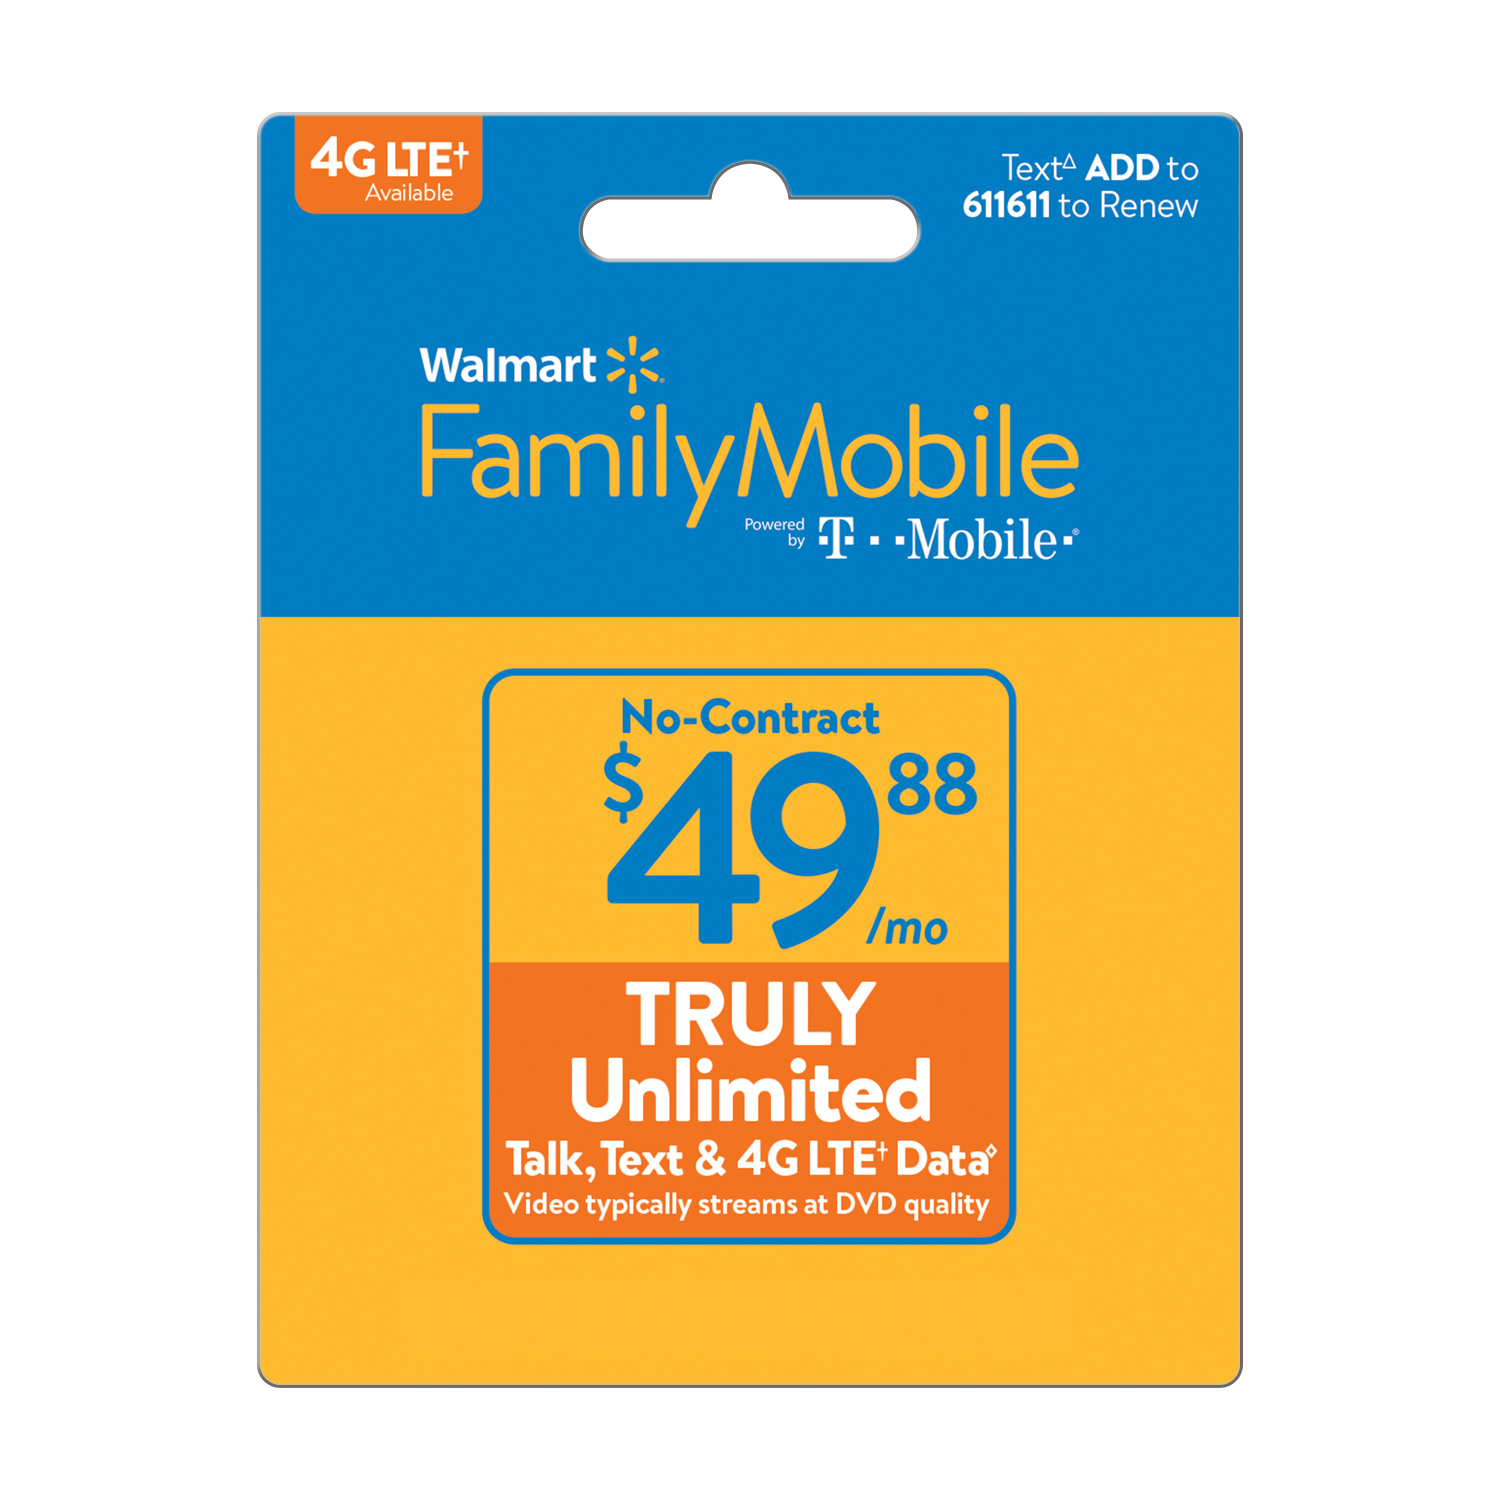 Walmart Family Mobile $49.88 TRULY Unlimited Monthly Plan (Email Delivery)